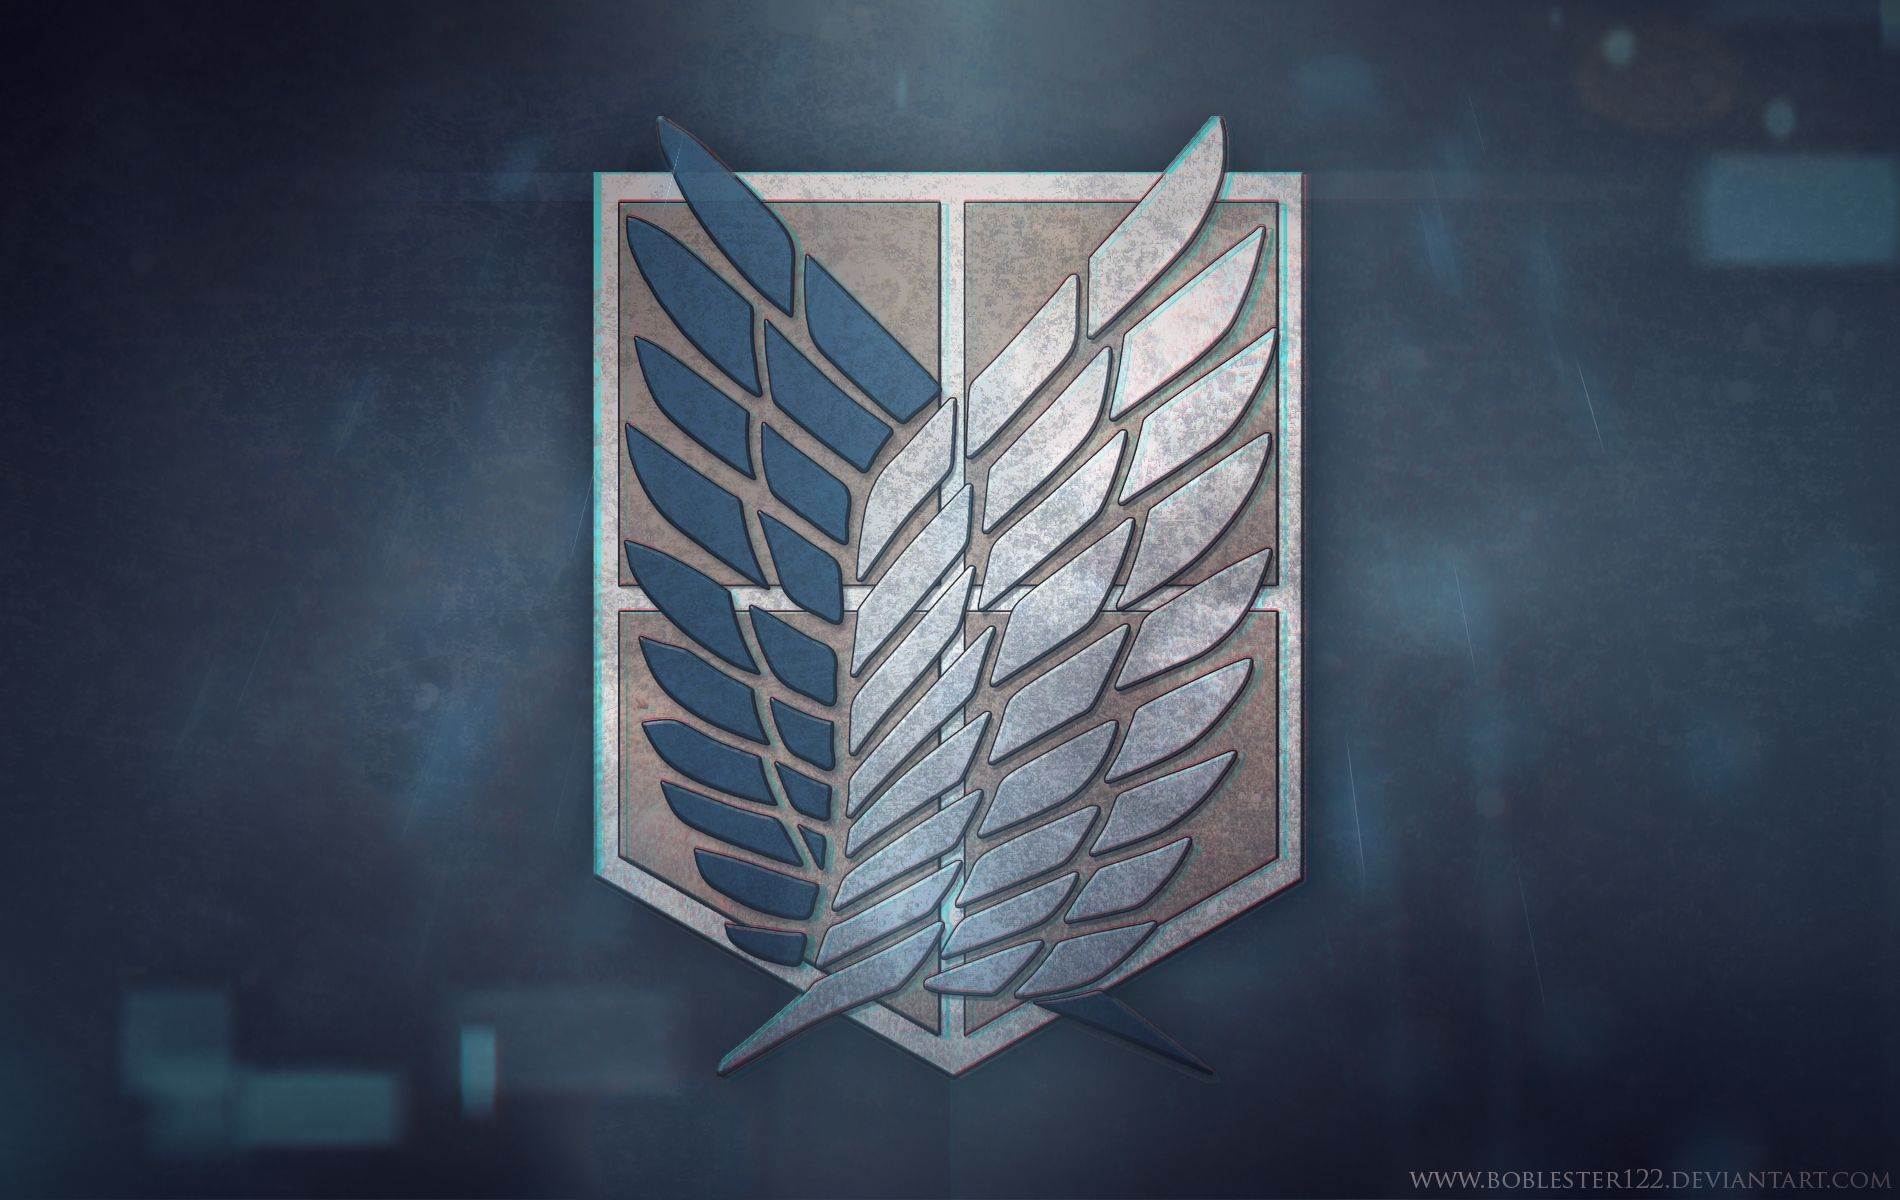 Wings Of Freedom Attack On Titan Wallpapers Top Free Wings Of Freedom Attack On Titan Backgrounds Wallpaperaccess